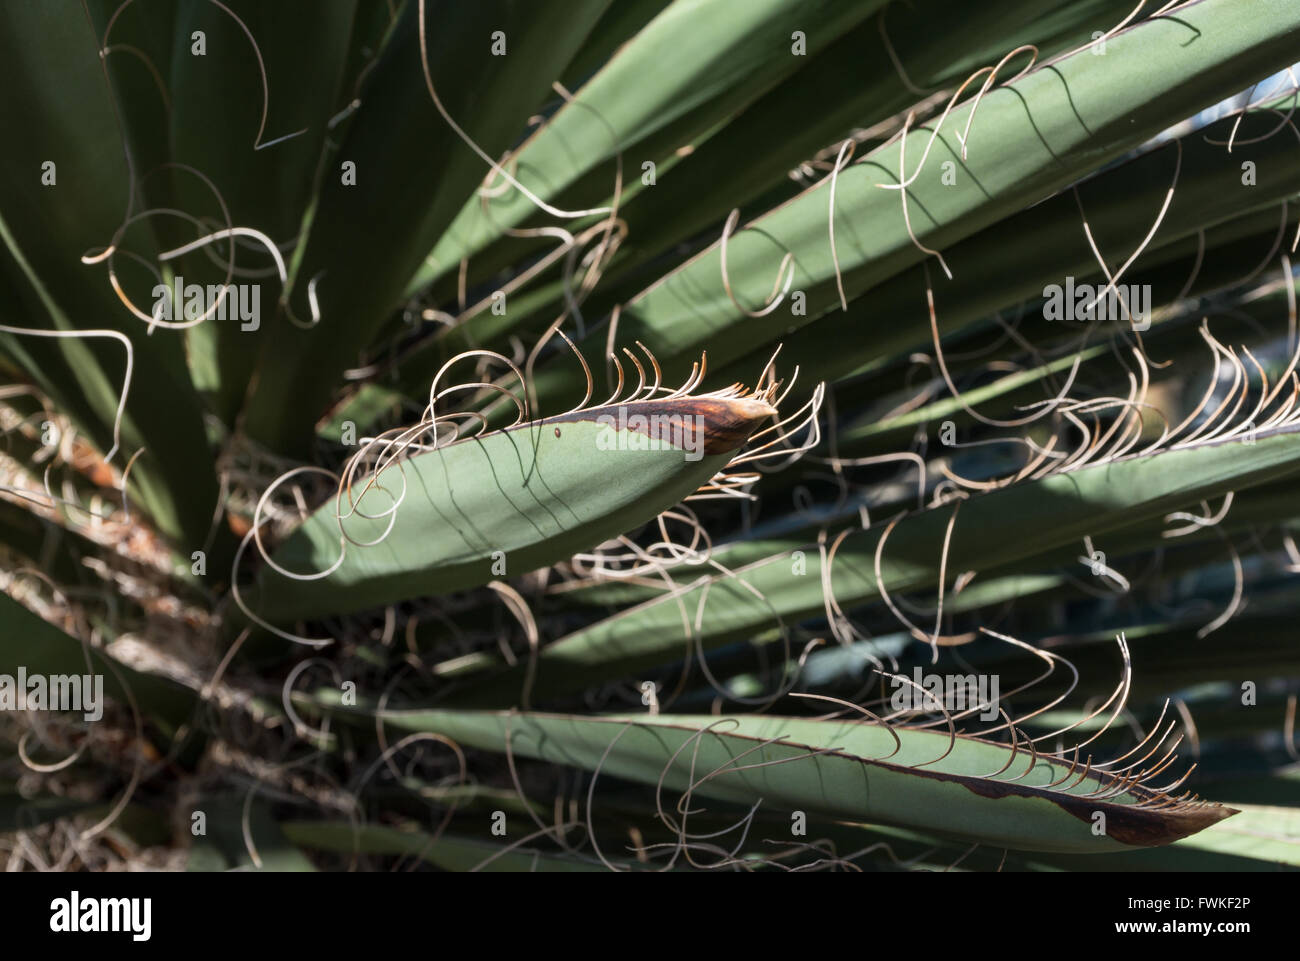 Close up of the bladed leaves of a Spanish Dagger shrub plant (Yukka Faxoniana - Agavaceae) - Stock Image